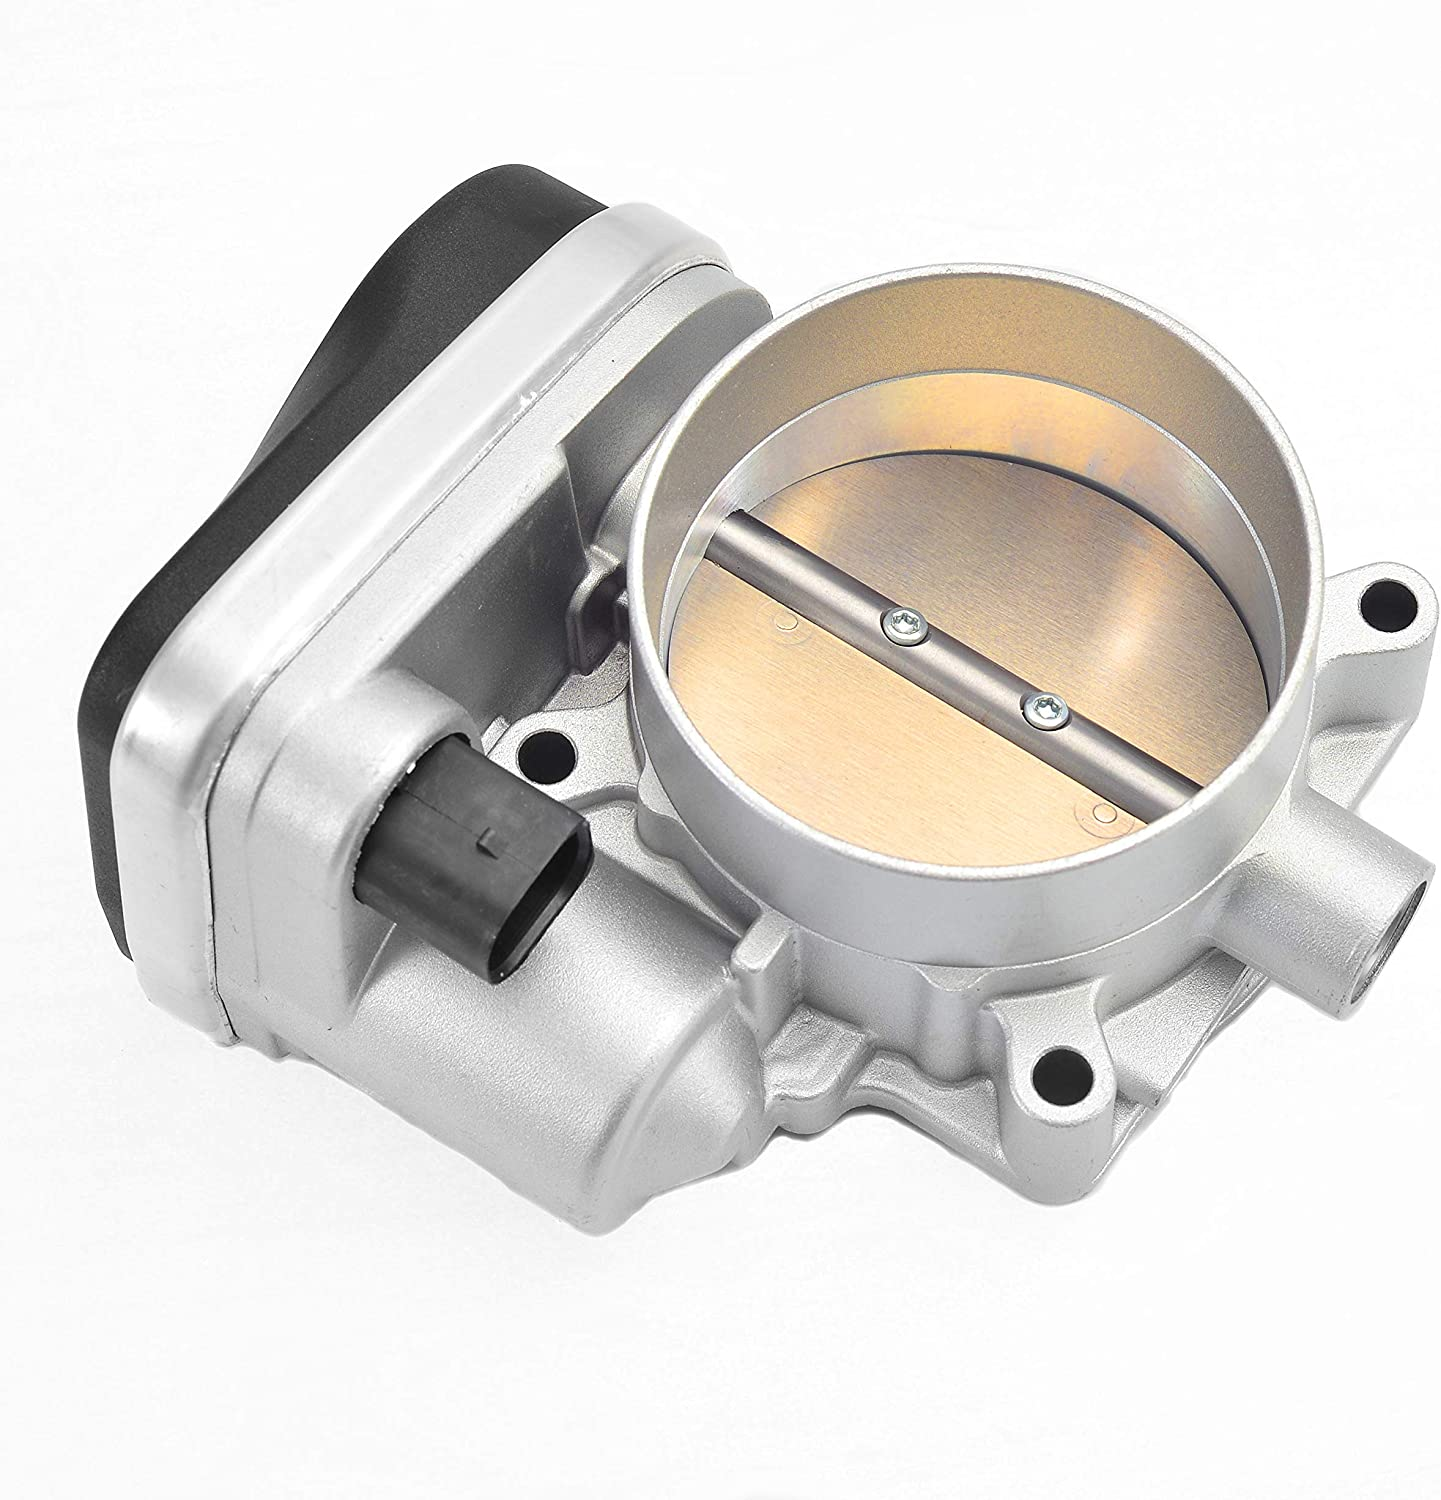 ADIGARAUTO S20041 Throttle Body Compatible with Chrysler 300 Jeep Grand Cherokee Dodge Challenger Charger Durango Magnum 5.7L 6.1L 6.4L V8 Replace Part Number 04591847AC